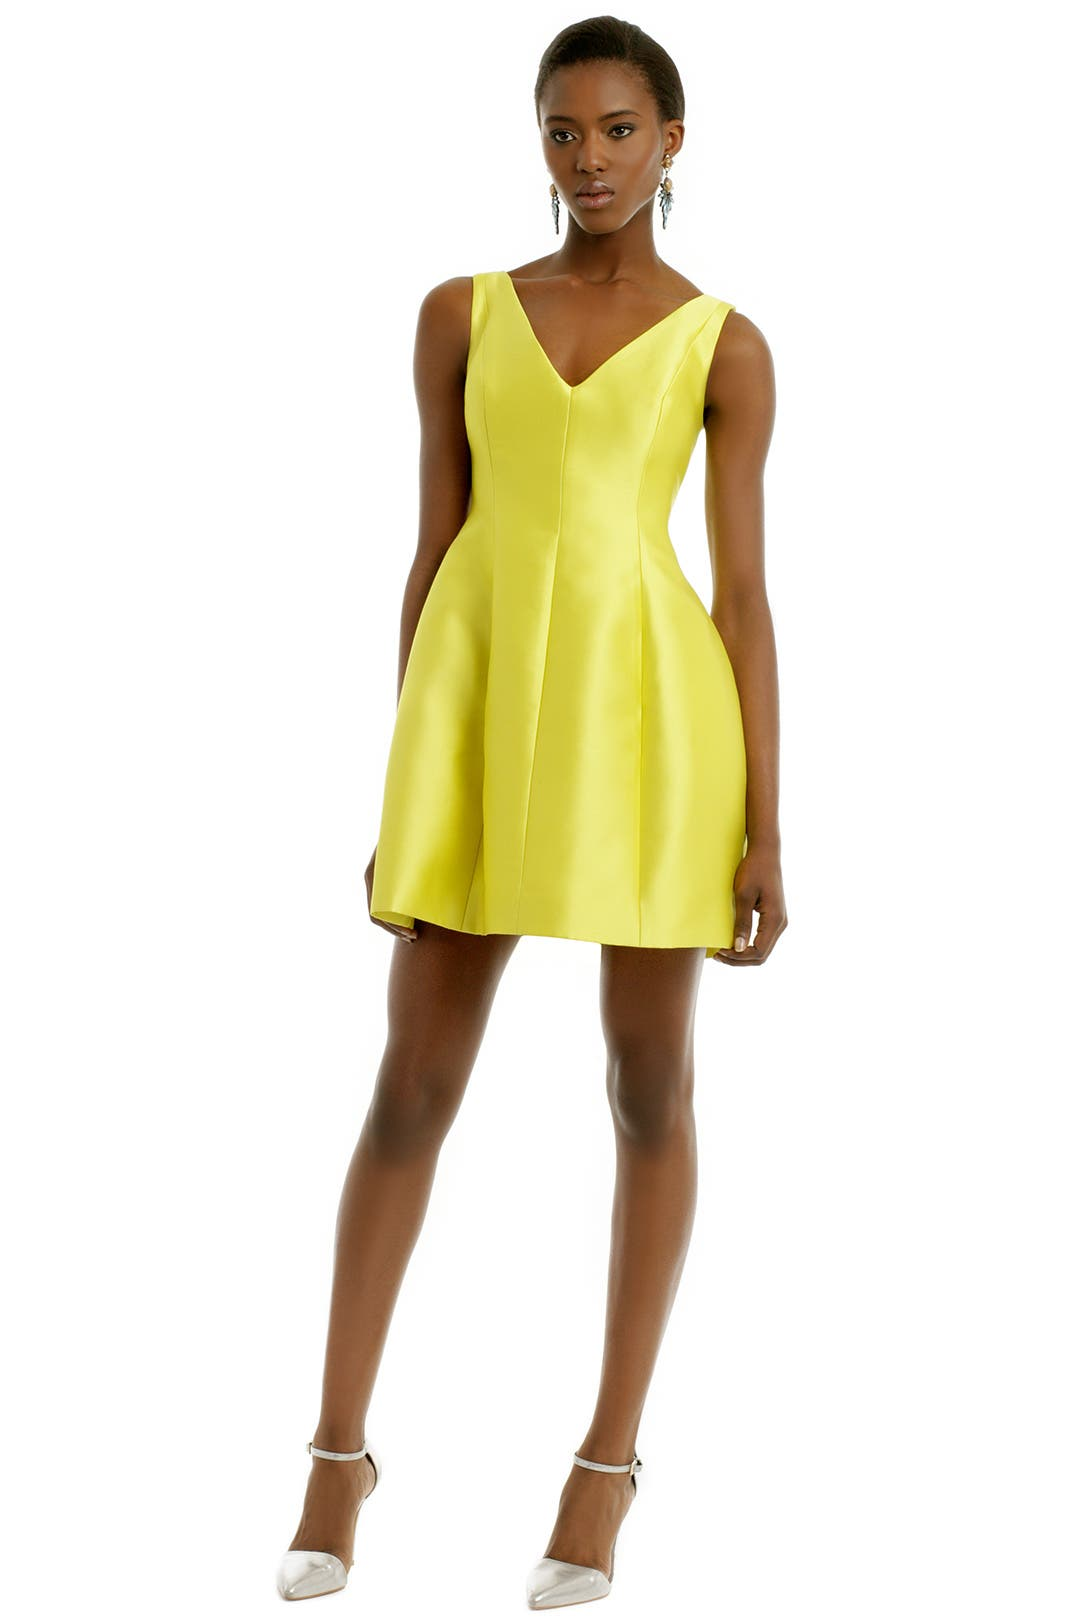 Jolt of Citron Dress by kate spade new york